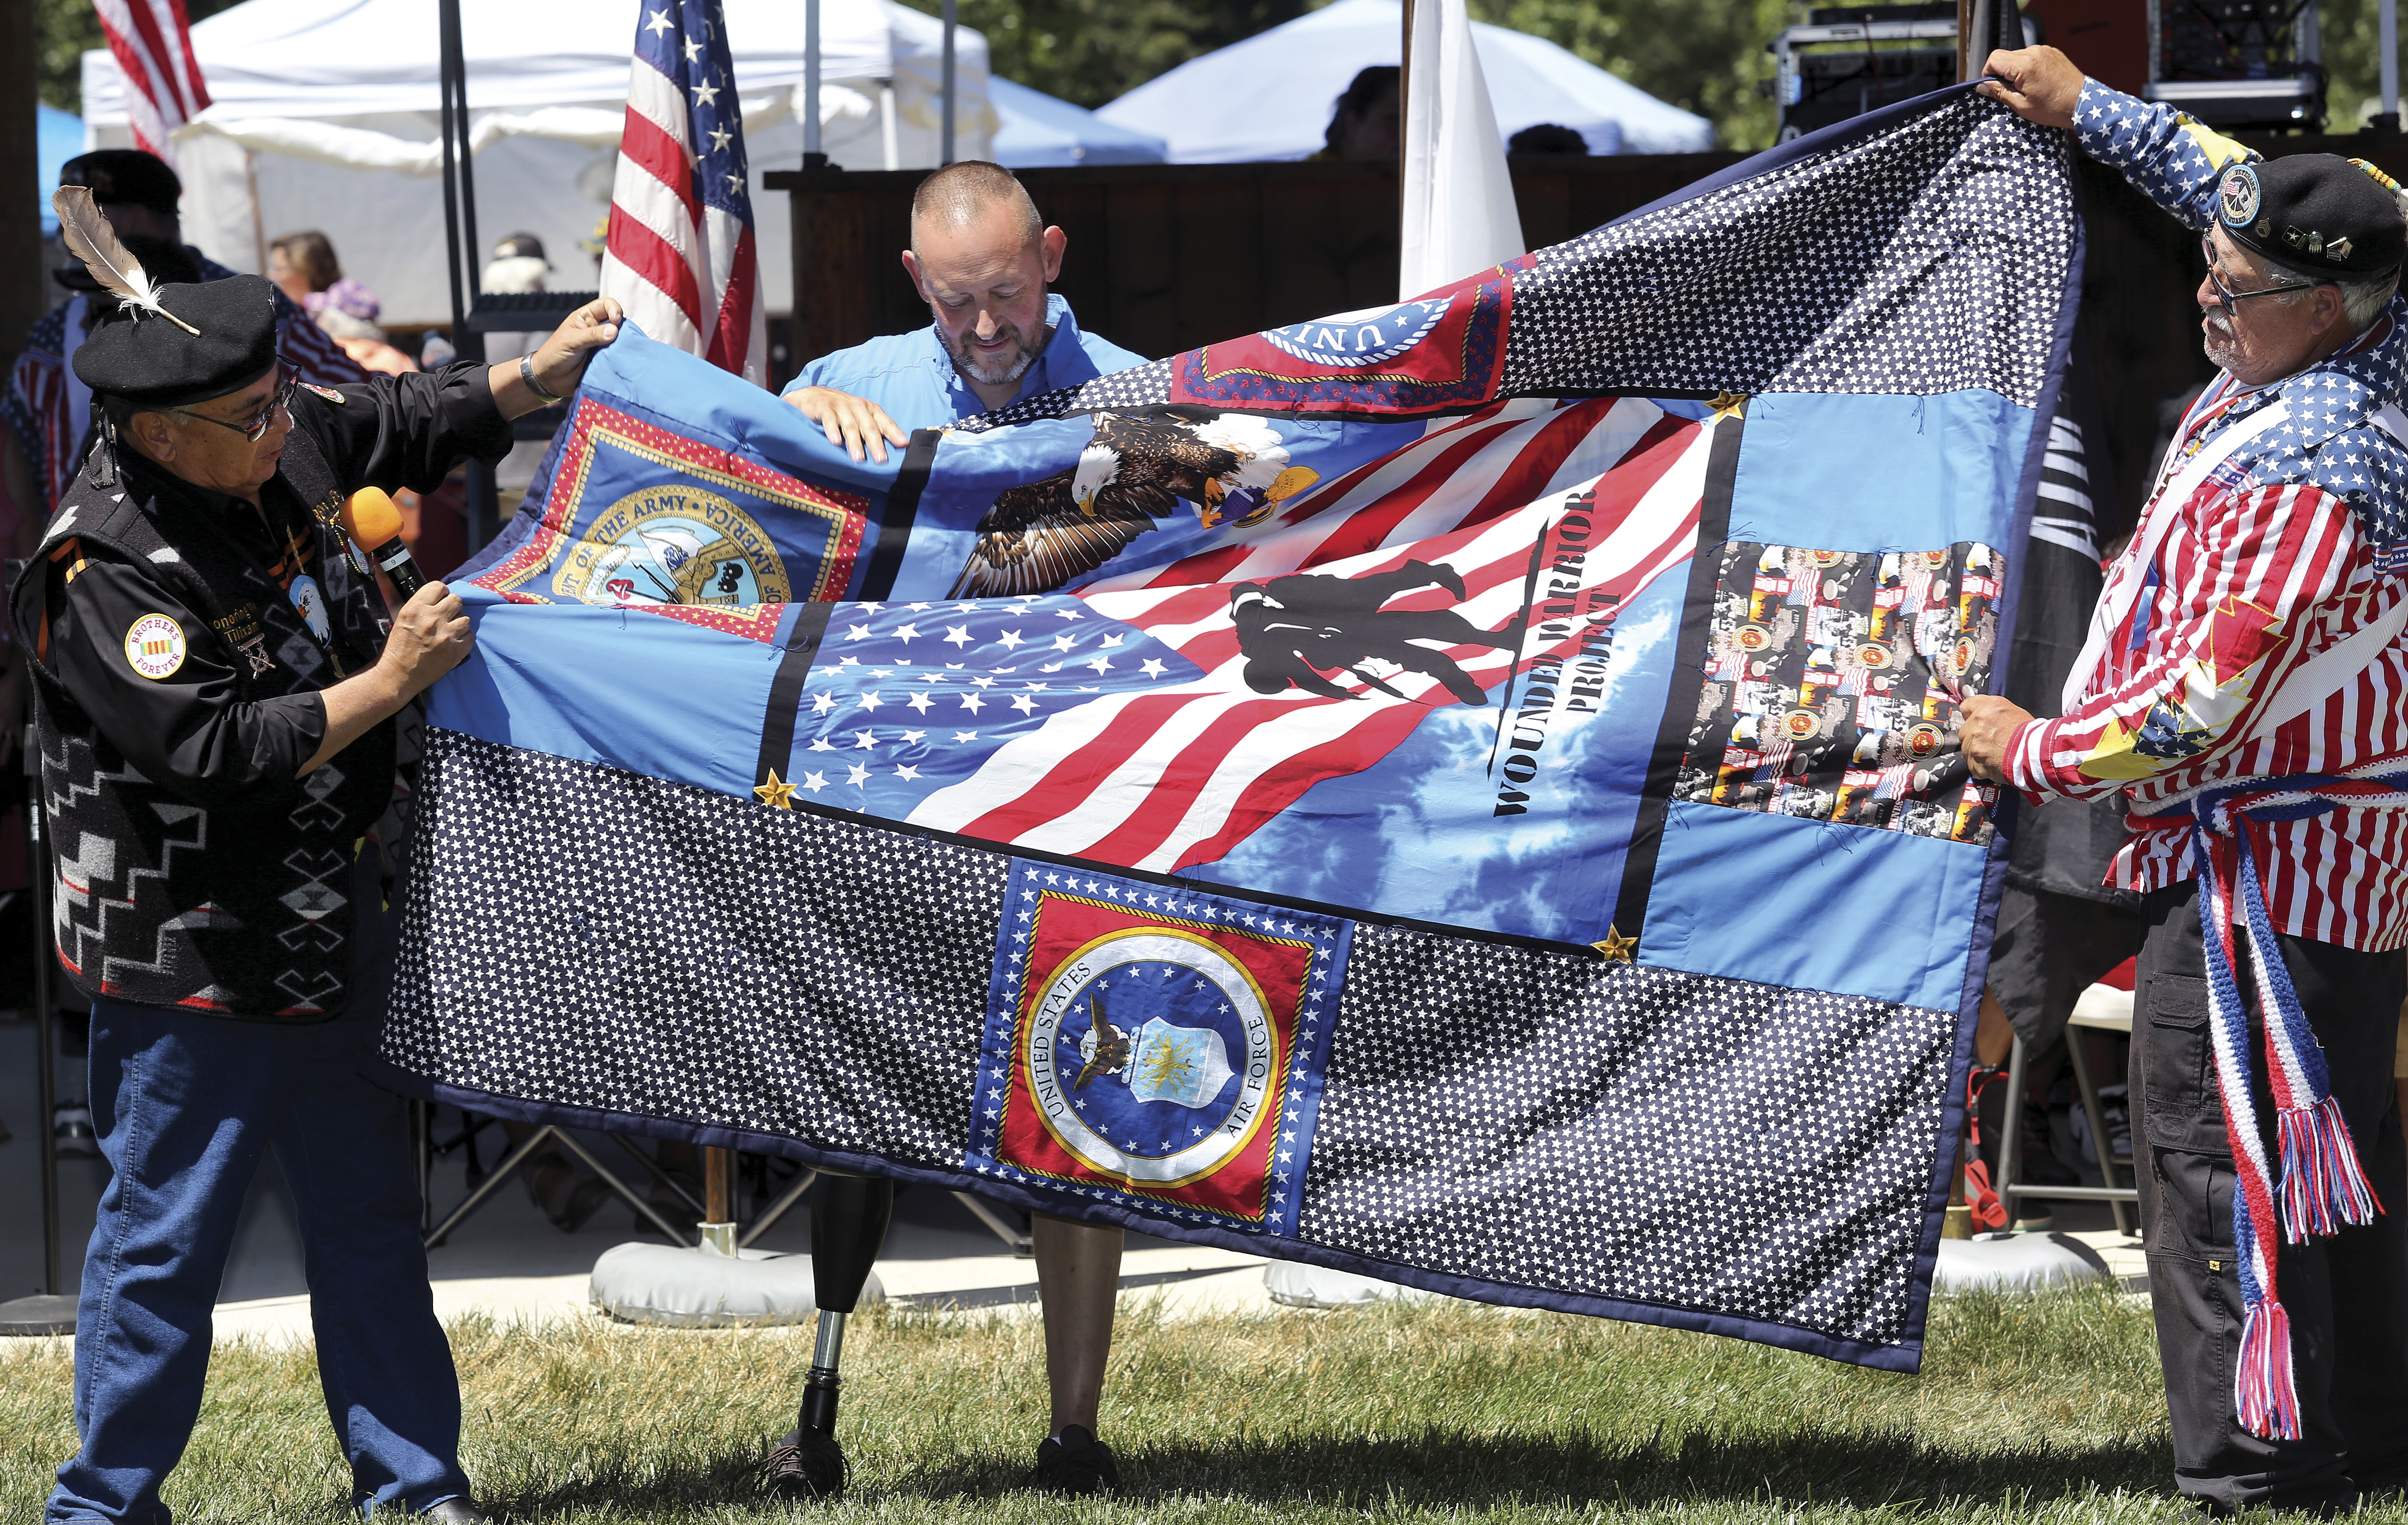 Veterans' events slated for July 11-14 at Uyxat Powwow